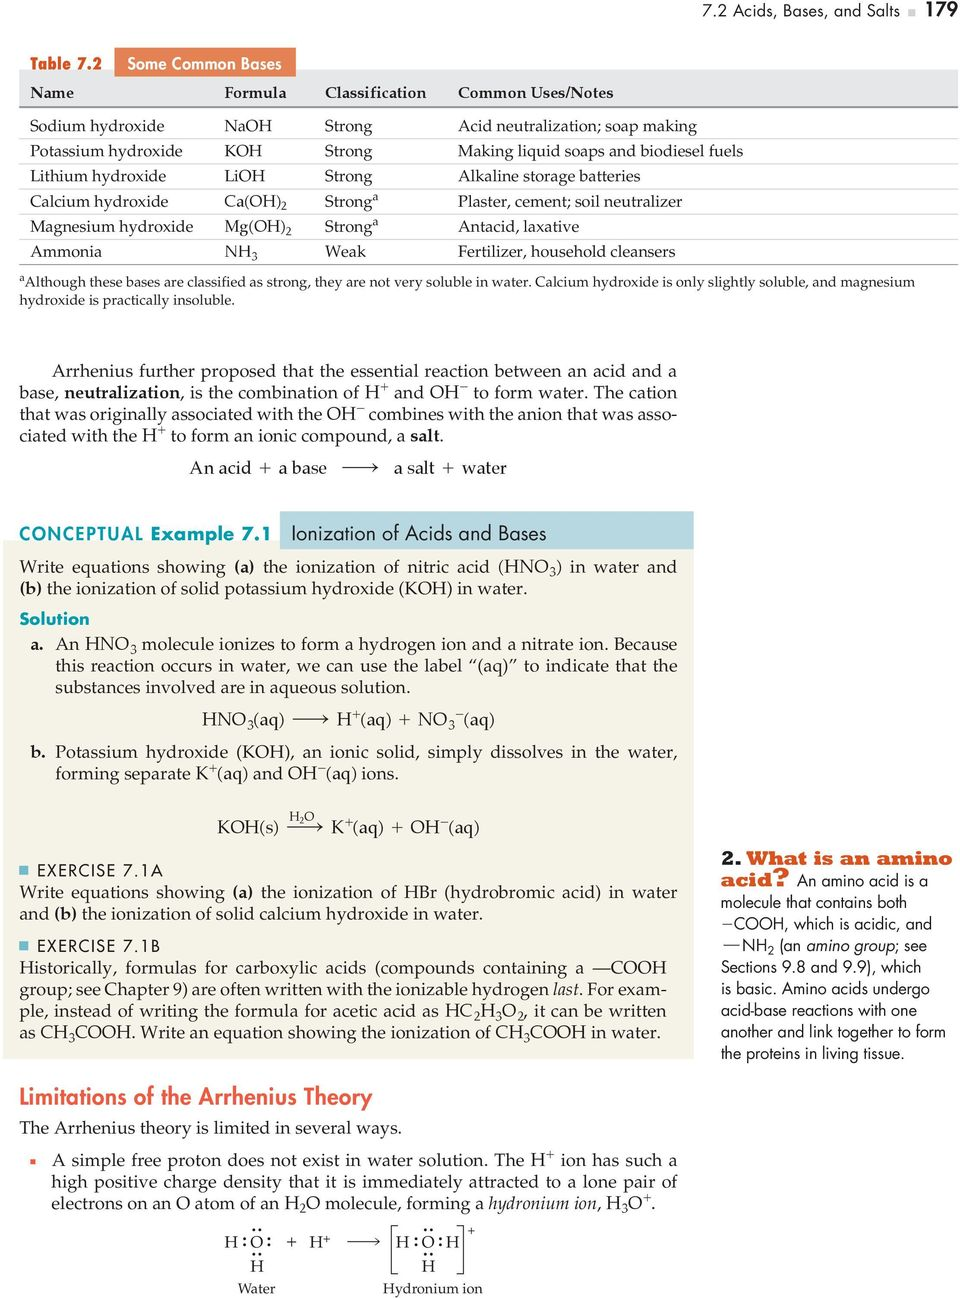 Buy essay online cheap time for strip of magnesium to dissolve in a solution of water and acid